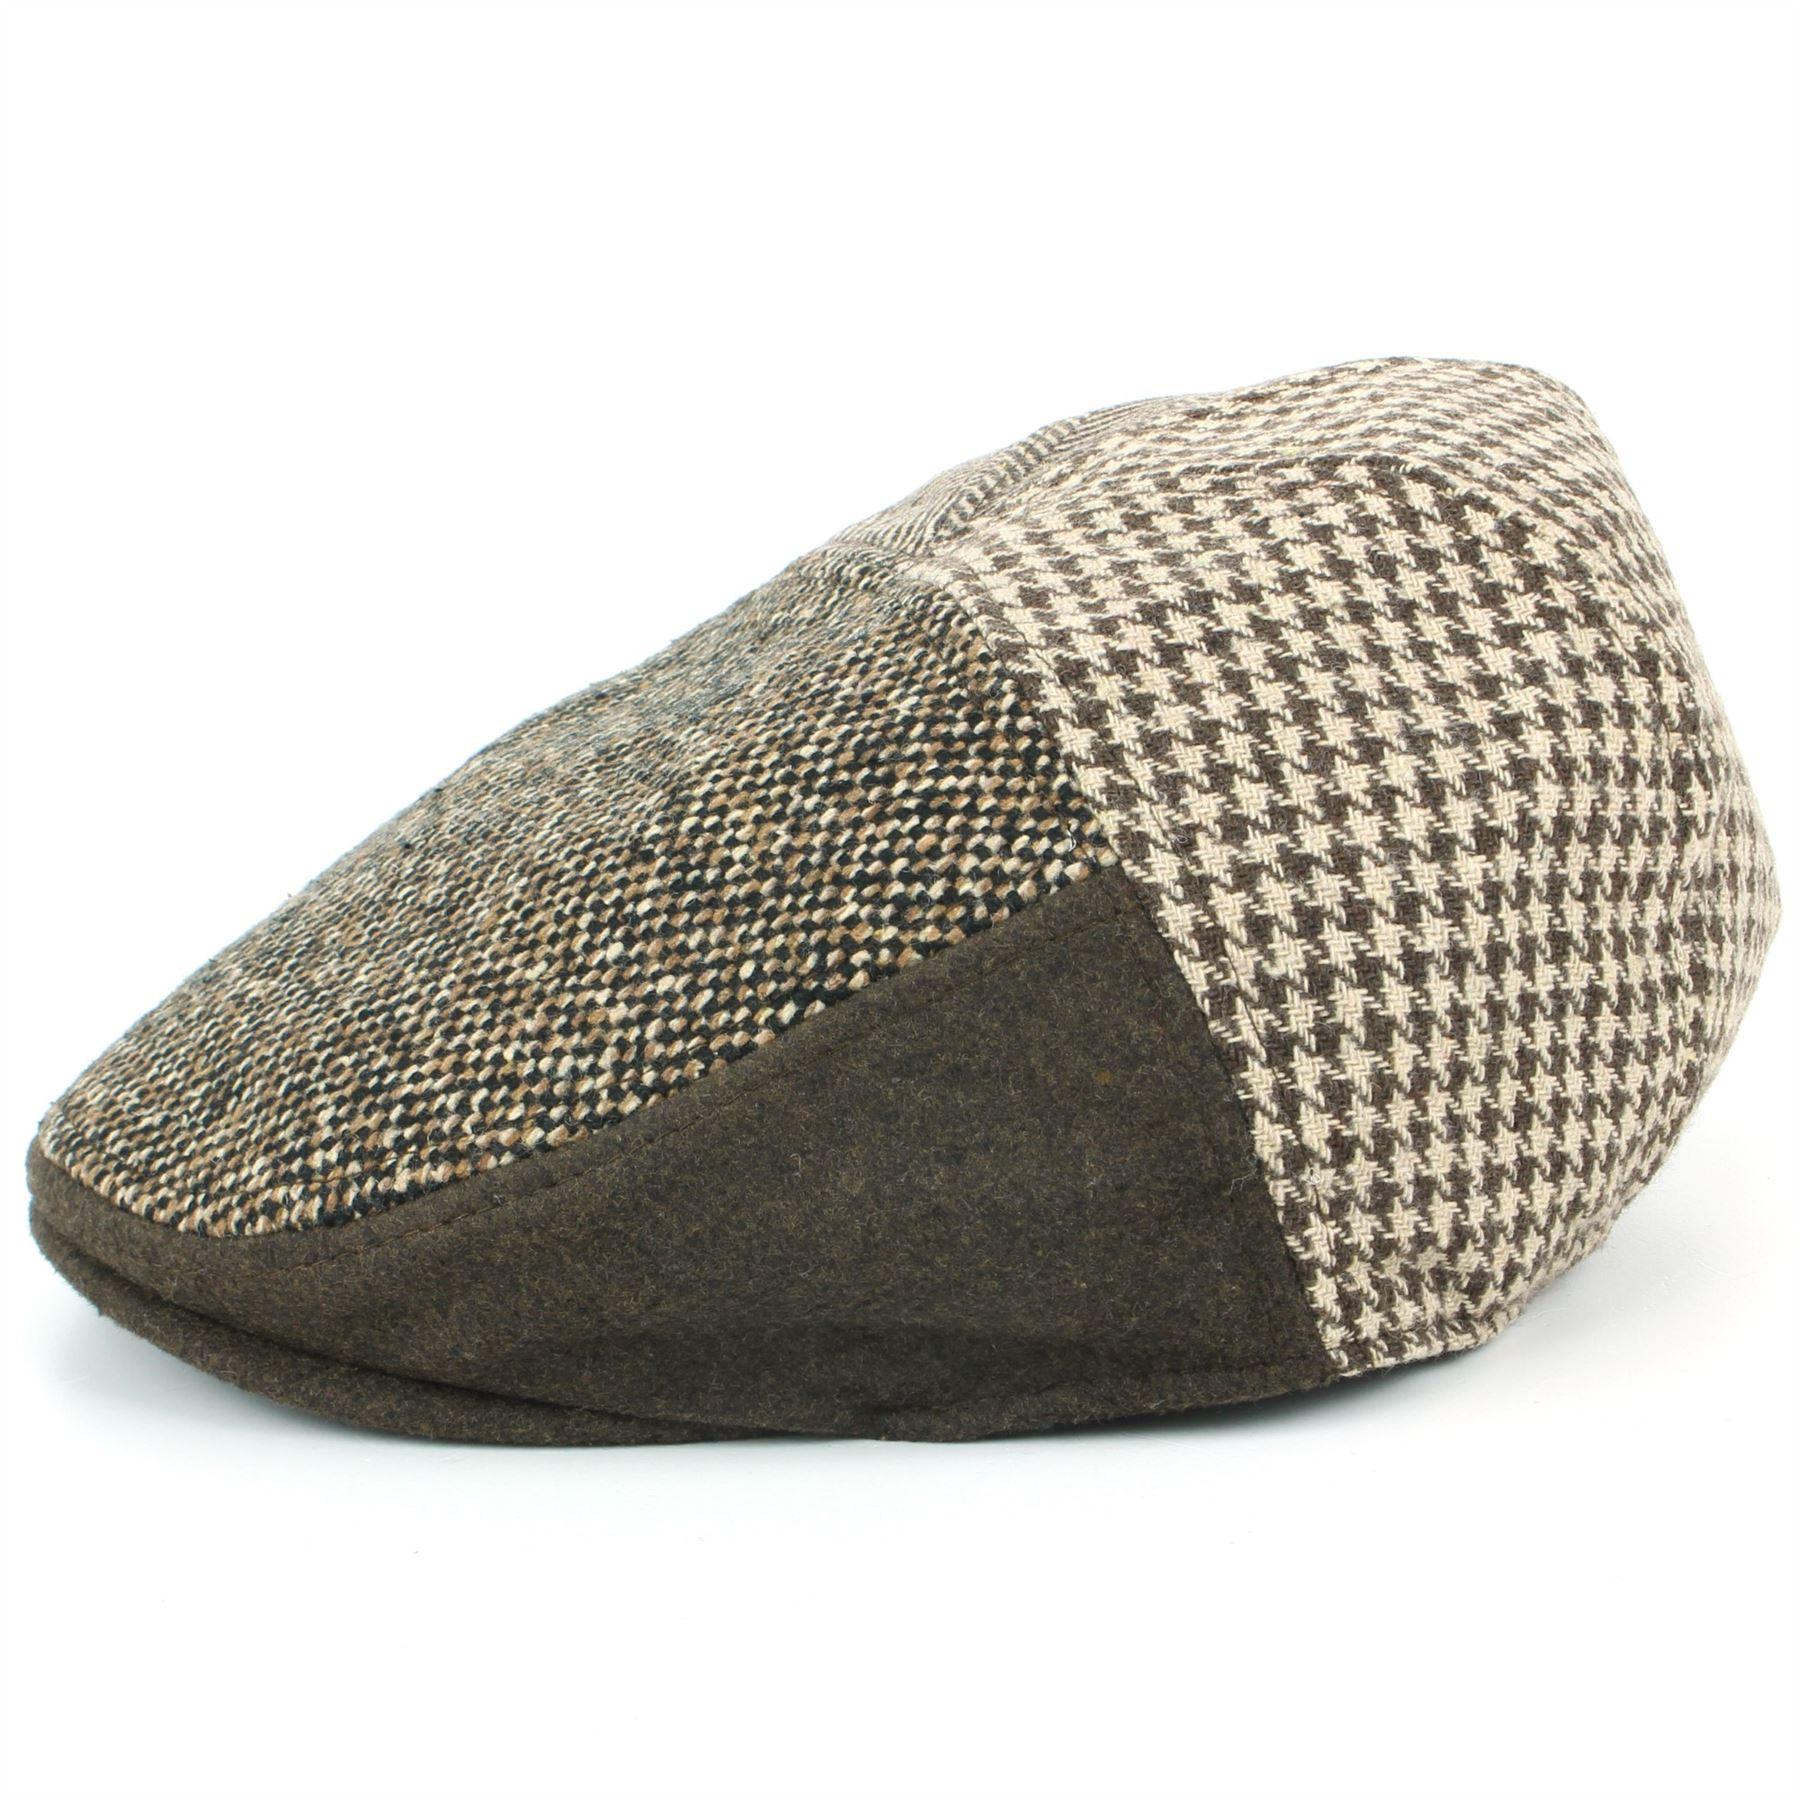 Tweed Flat Cap Hat BLACK BROWN Wool Hawkins Panel Fabric Patchwork ... ef939f76b8c4